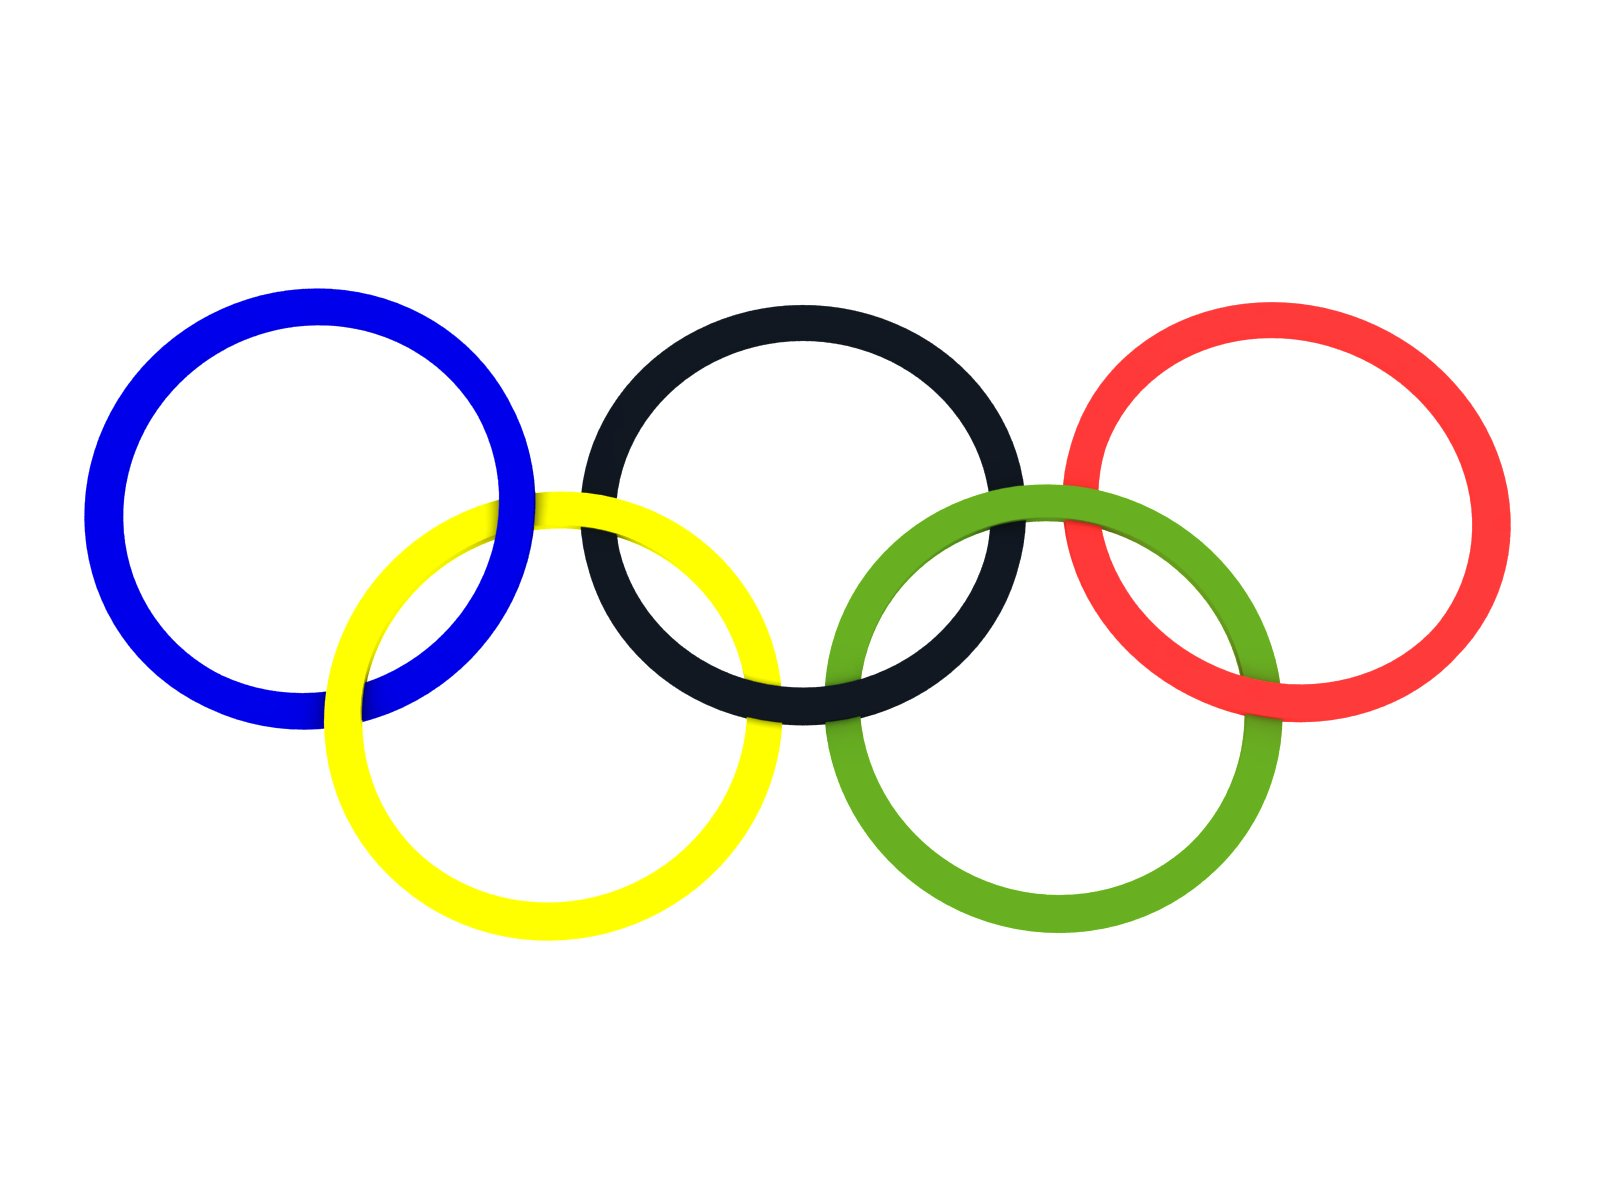 olympic rings transparent background - all the Gallery you need!